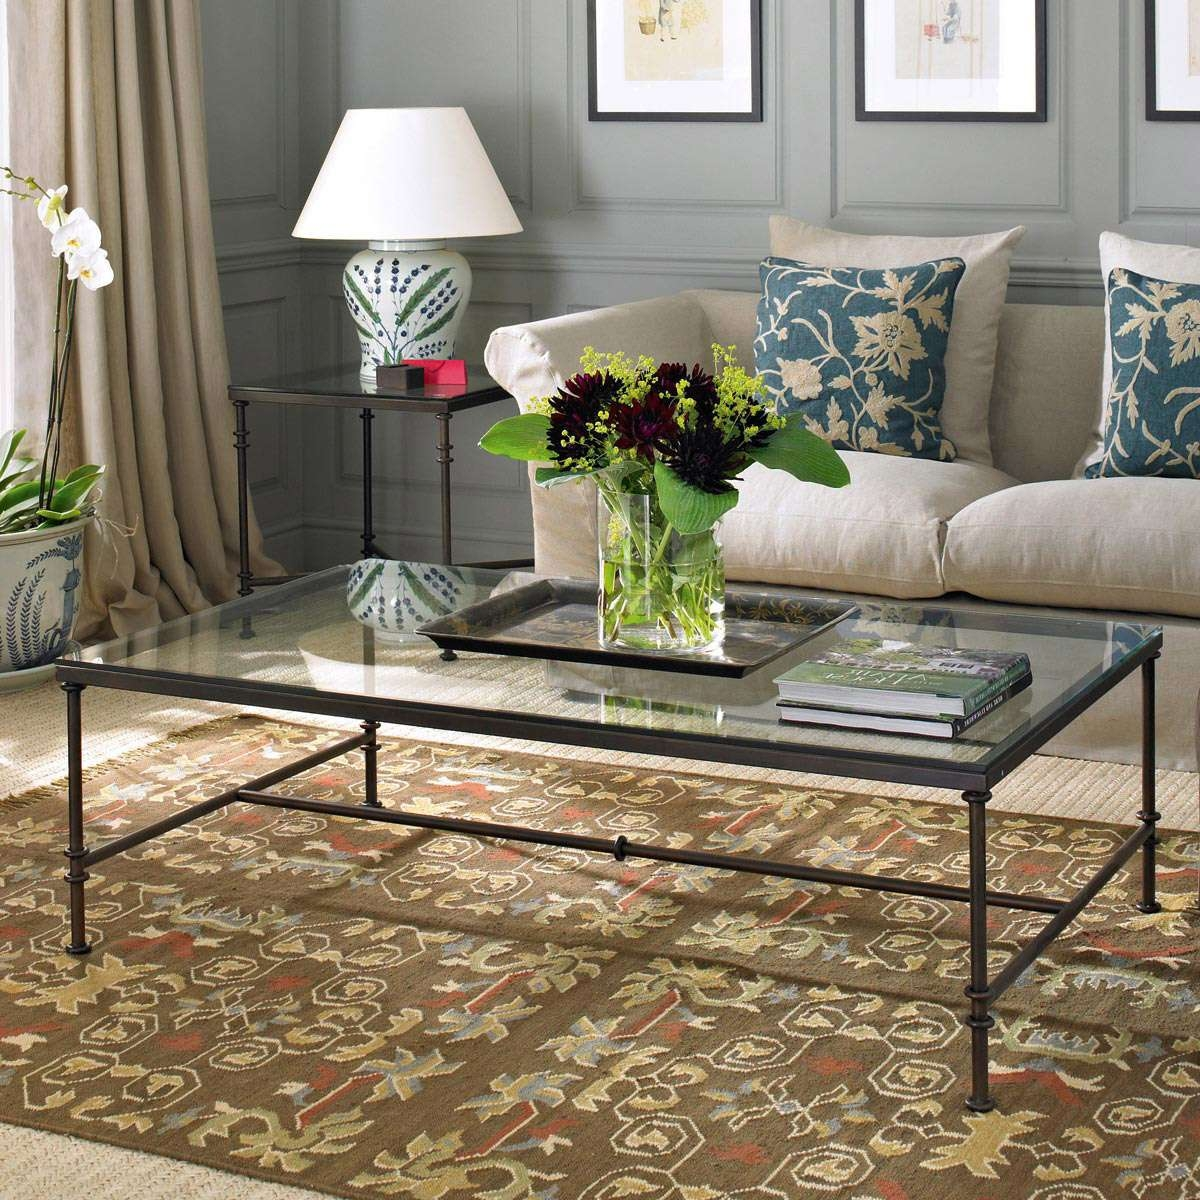 Metal & Glass Coffee Tables – Glass Coffee Tables, Gray Shag Rugs In Favorite Metal And Glass Coffee Tables (View 5 of 20)